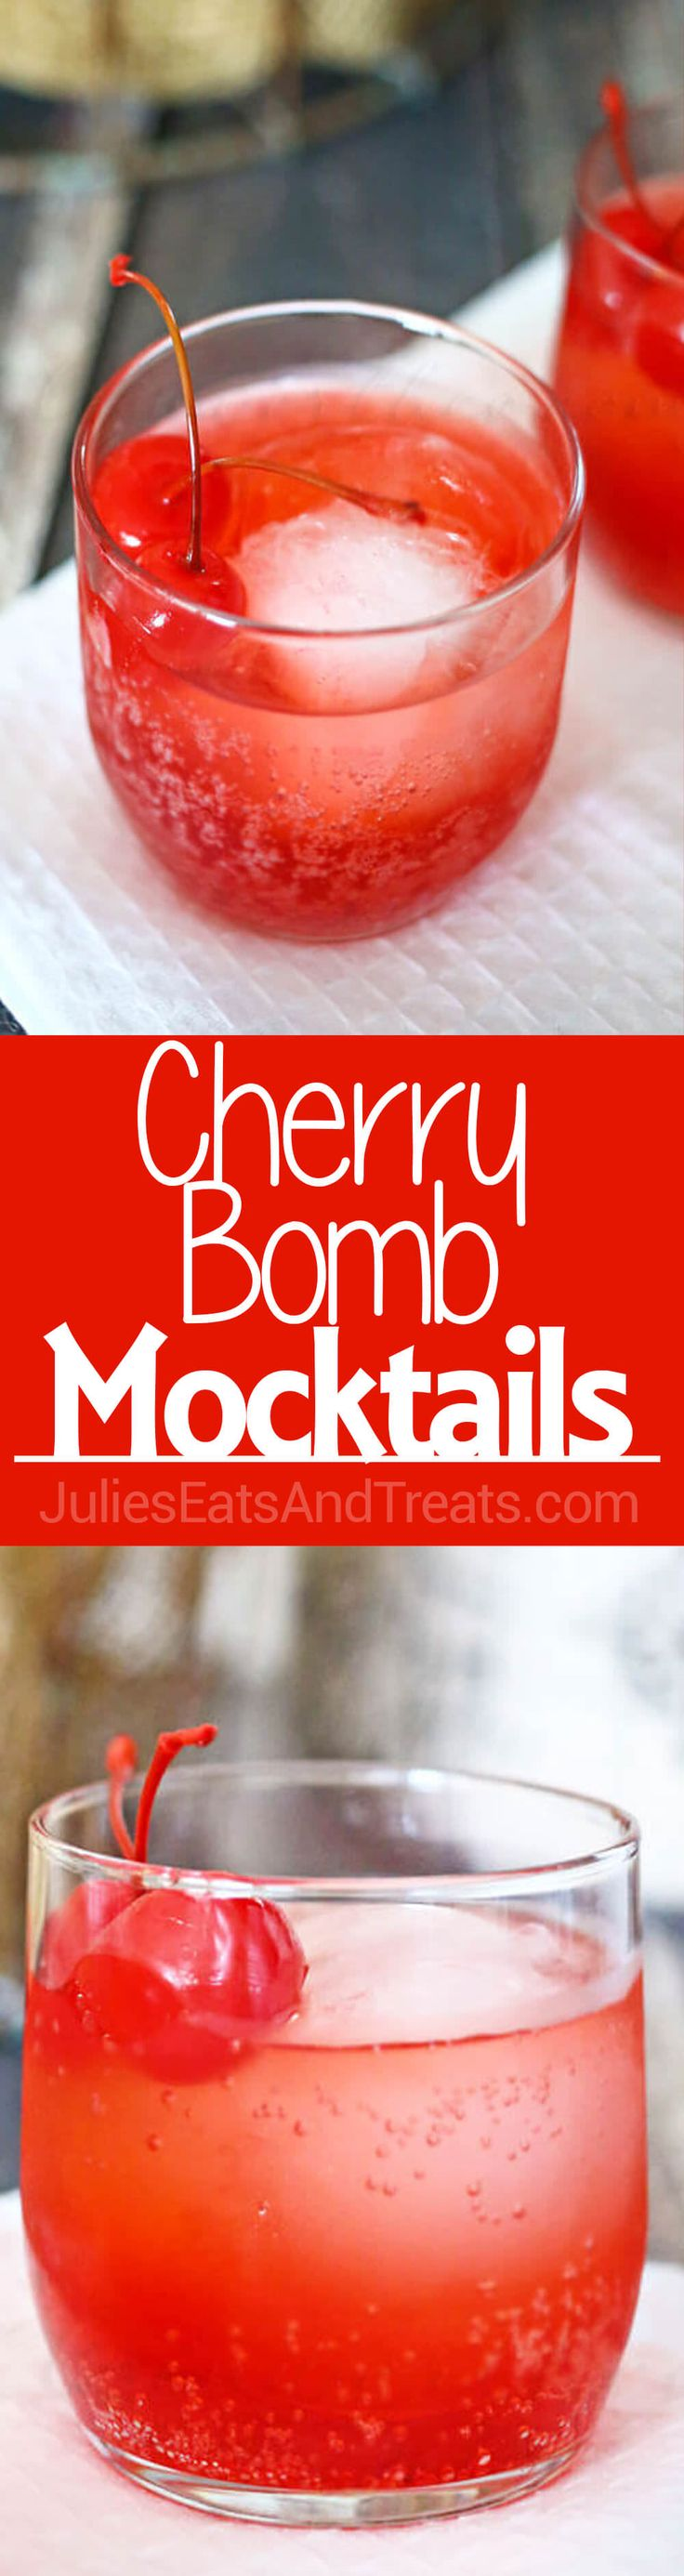 Cherry Bomb Mocktail - Only 3 Ingredients to a Easy, Fun Flirty Drink Loaded with Bubbles and Cherry! ~ http://www.julieseatsandtreats.com